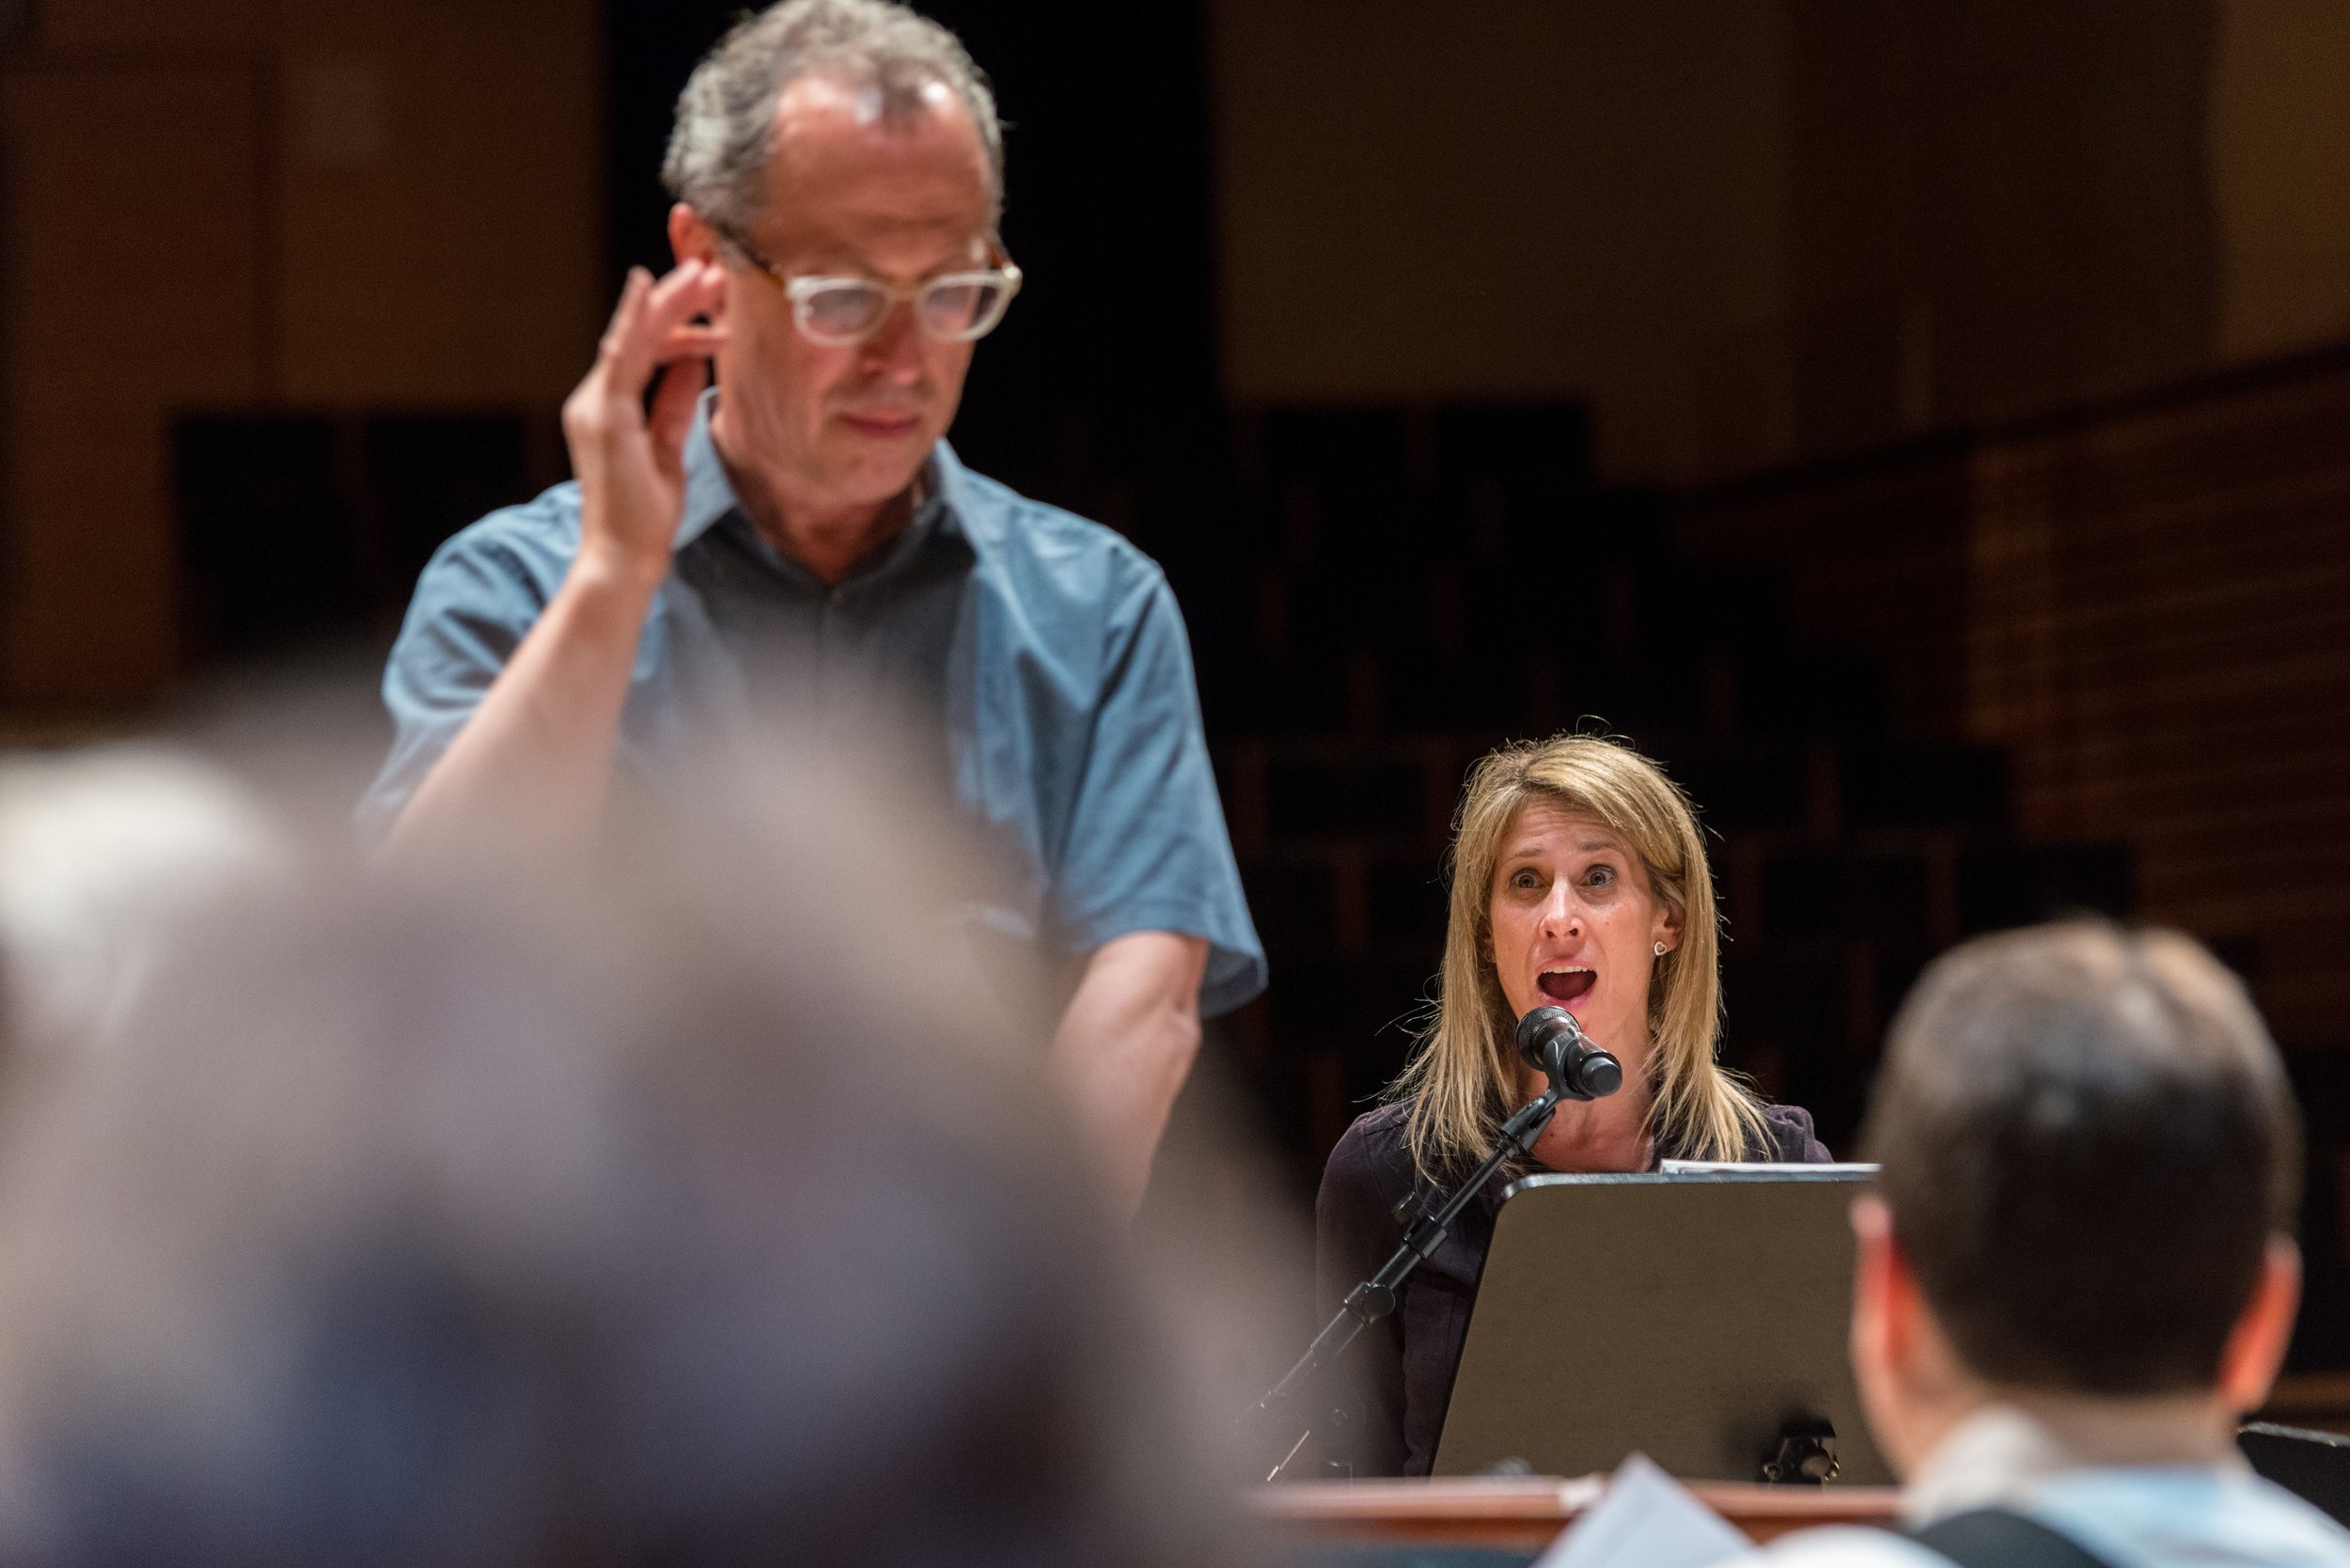 GRAMMY award-winning soprano Hila Plitmann returns to the EMPAC stage to perform and record David Del Tredici's first Alice work,  Pop-pourri . David Del Tredici sat in the orchestra and listened to the piece come together for the first time in over 30 years. What a treat!  Photo Credit Eric Berlin